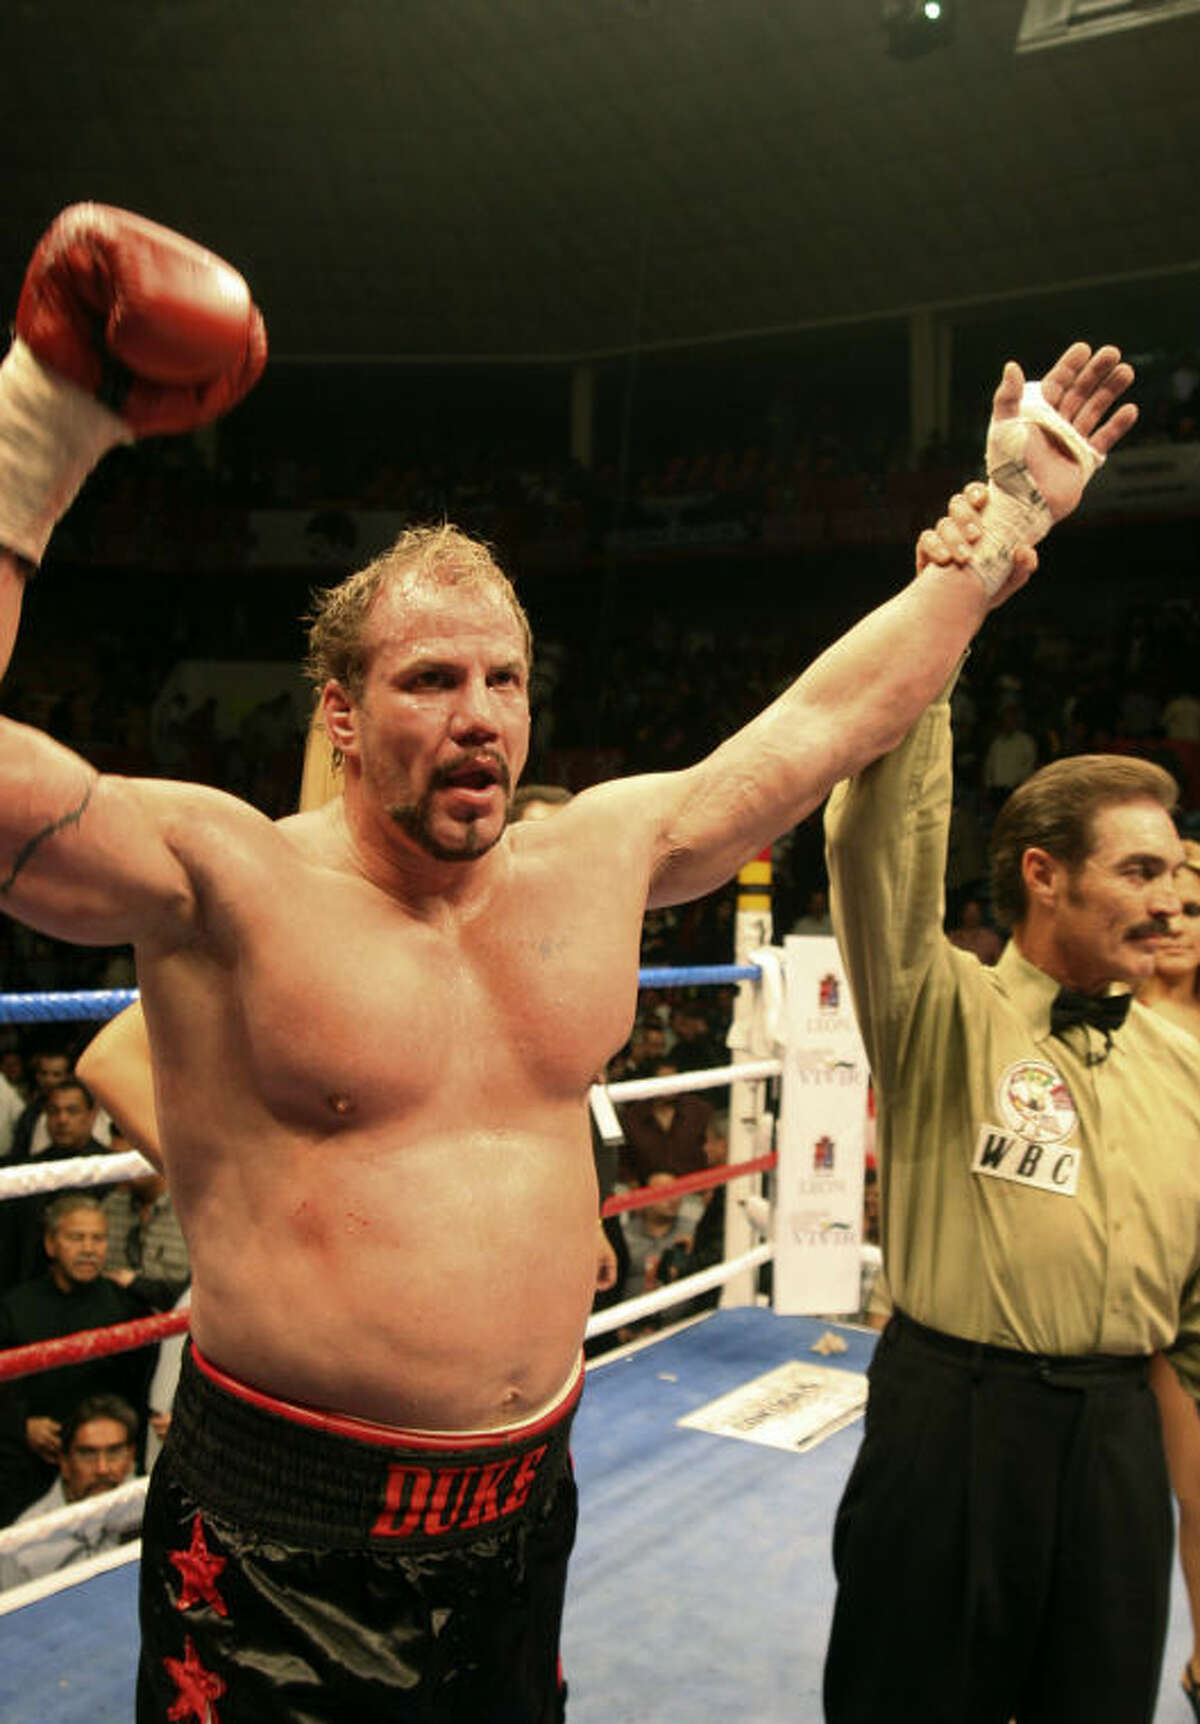 FILEm- In this Feb. 9, 2008 file photo, former world heavyweight champion Tommy Morrison, celebates after defeating Matt Weishaar in Leon, Mexico. Morrison, who gained fame for his role in the movie